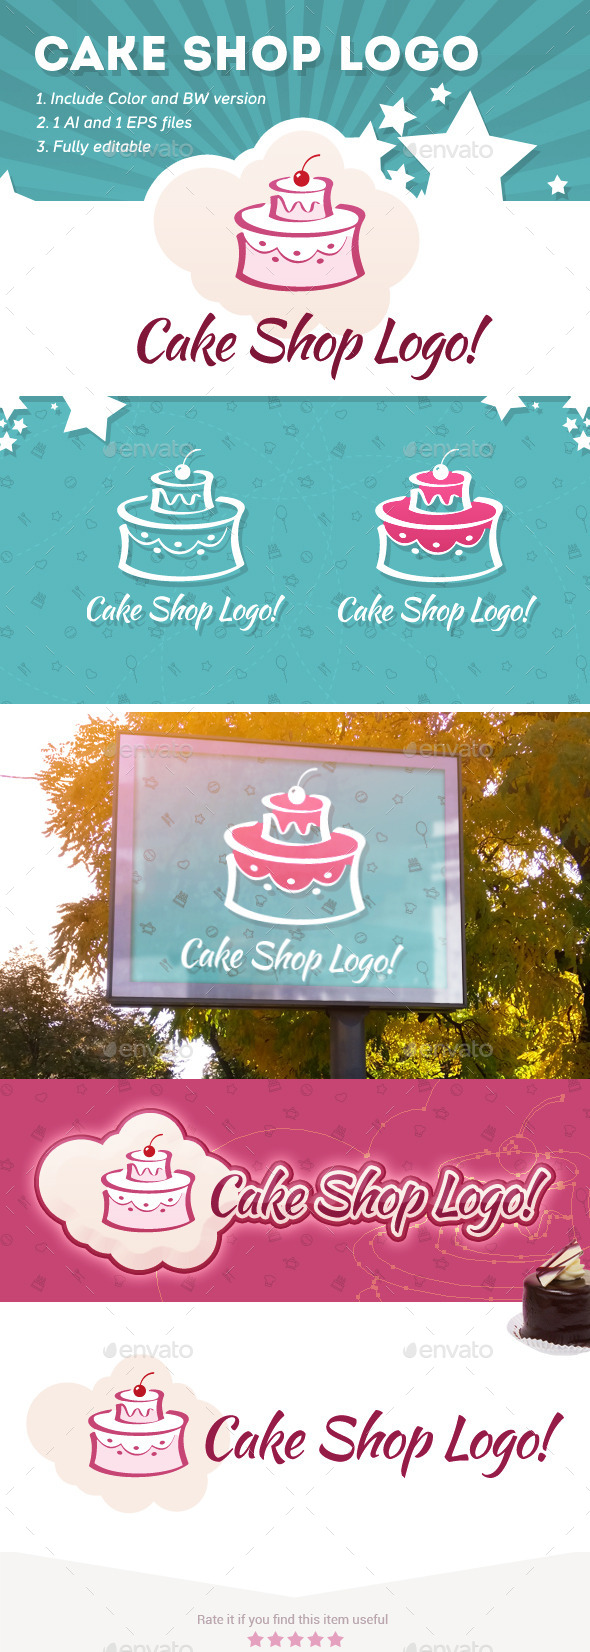 Cake Shop Logo - Food Logo Templates